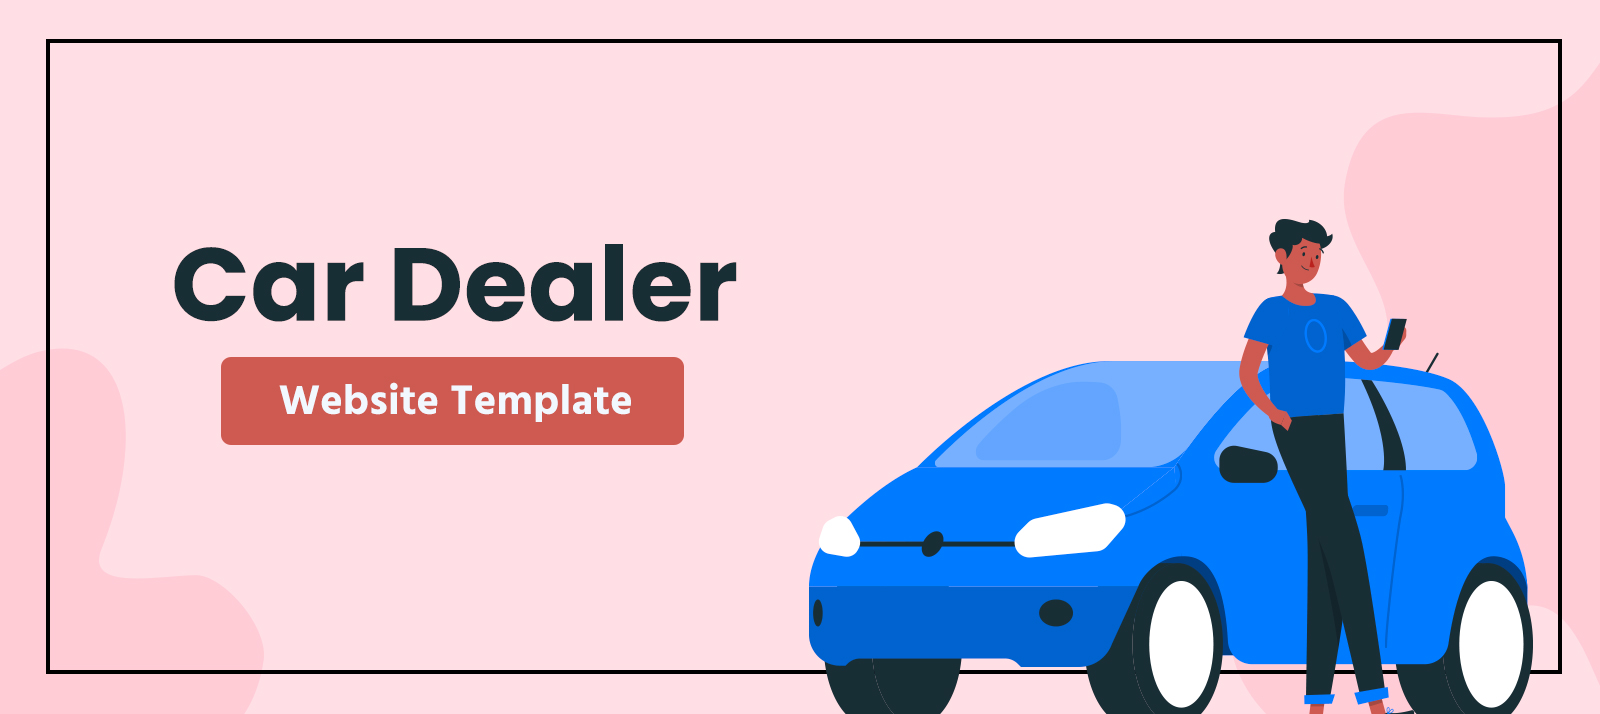 Inspirational designs, illustrations, and graphic elements from the world's best designers. New Free And Premium Car Dealer Website Template That You Can Use In 2020